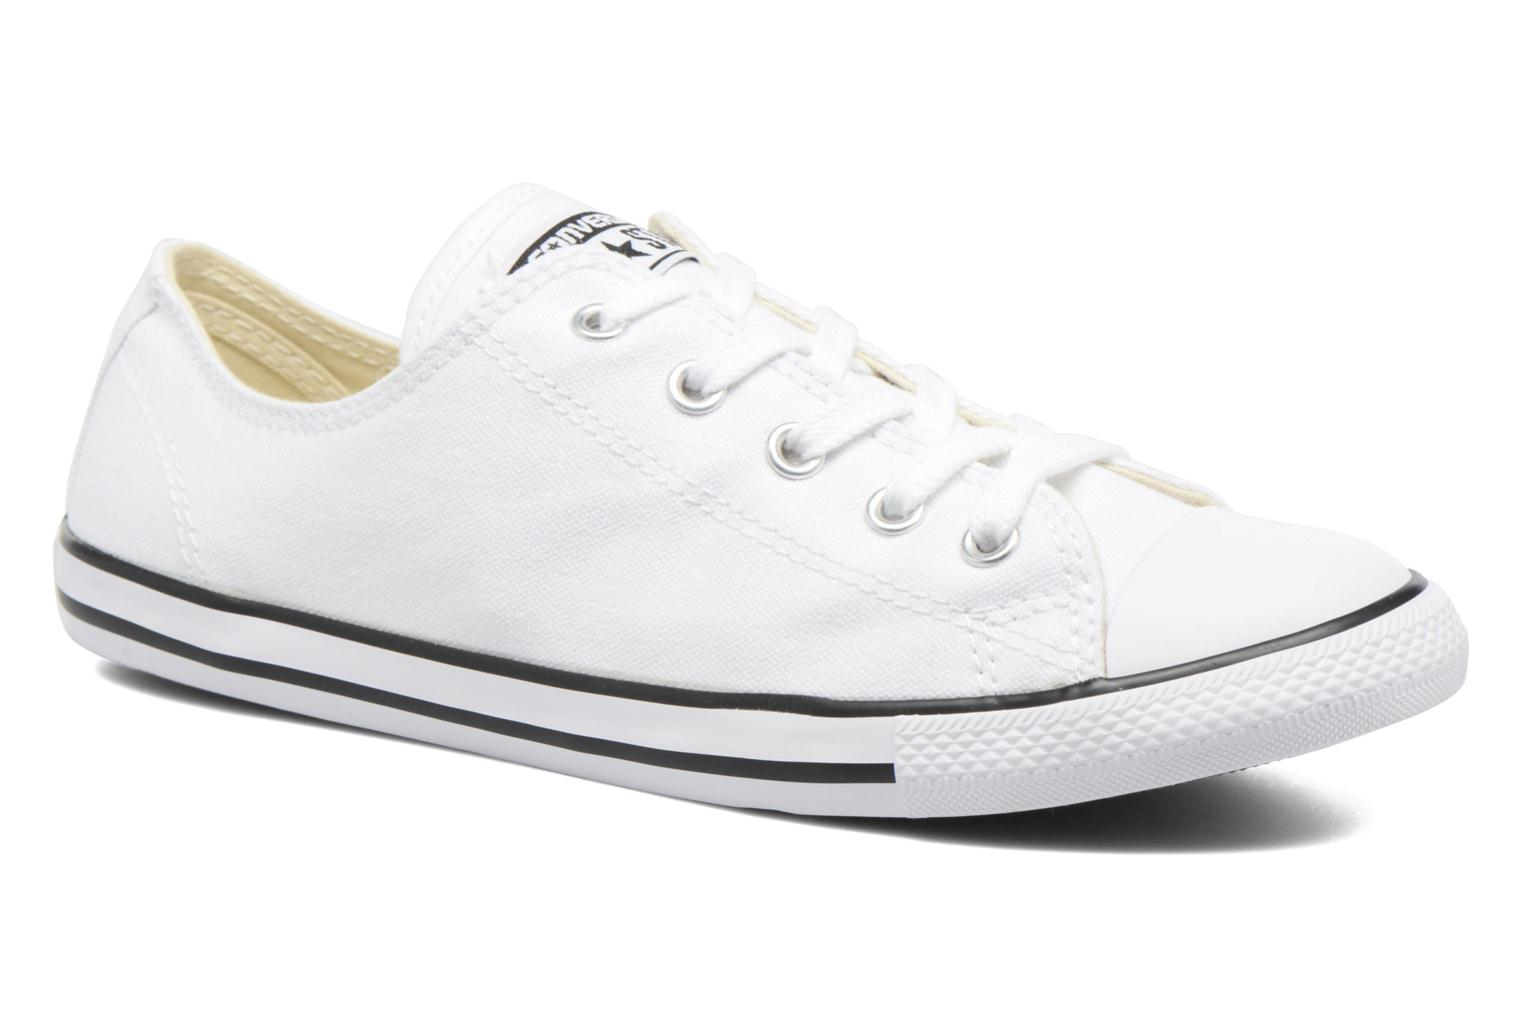 Converse All Star Dainty Canvas Ox W (Verde) - Sneakers chez Sarenza  (213296) b7d88dacf69